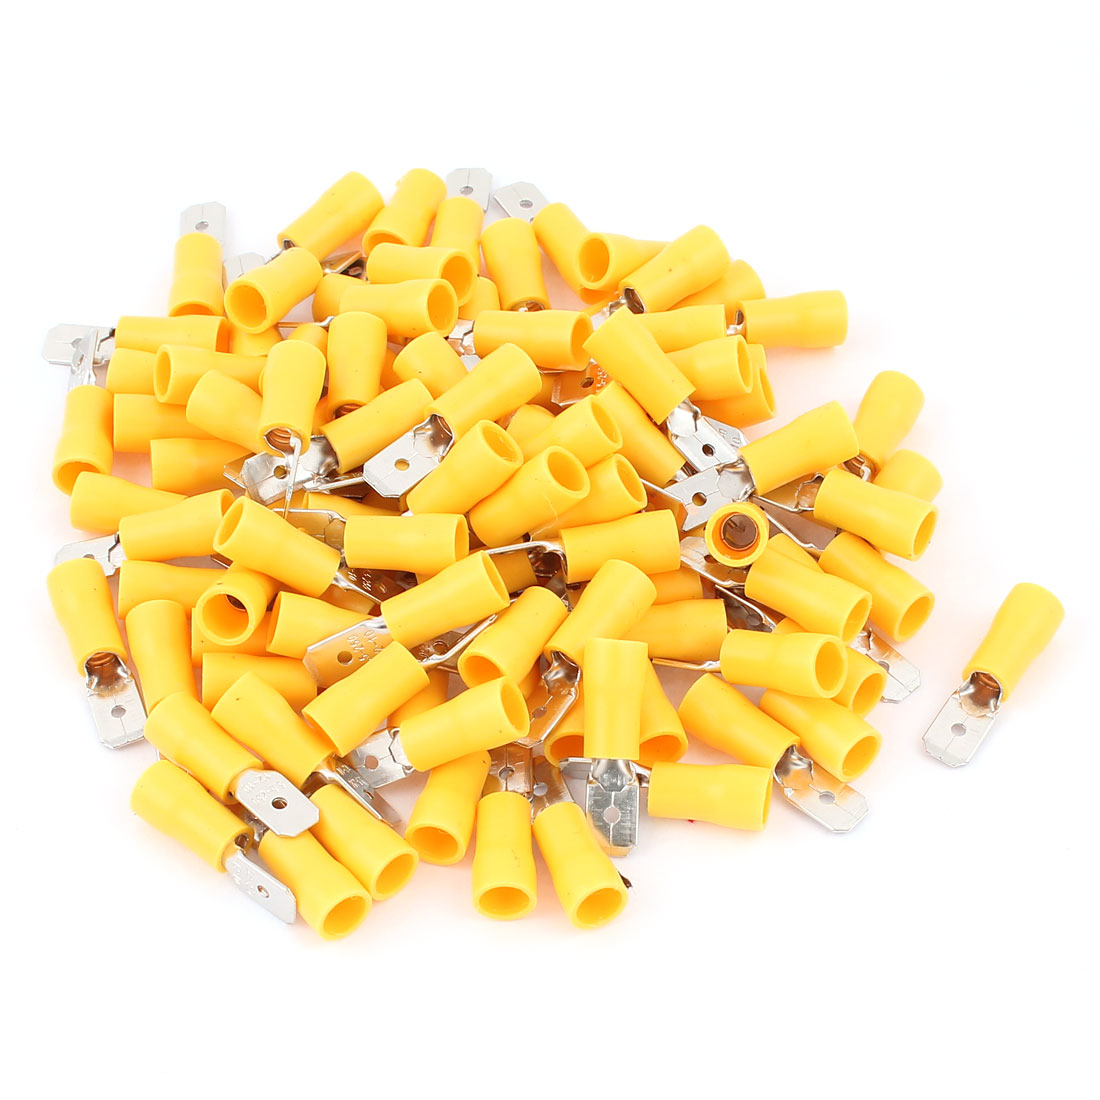 100Pcs MDD5-250 Yellow Plastic Sleeve Insulated Cable Crimp Terminals Connector for AWG12-10